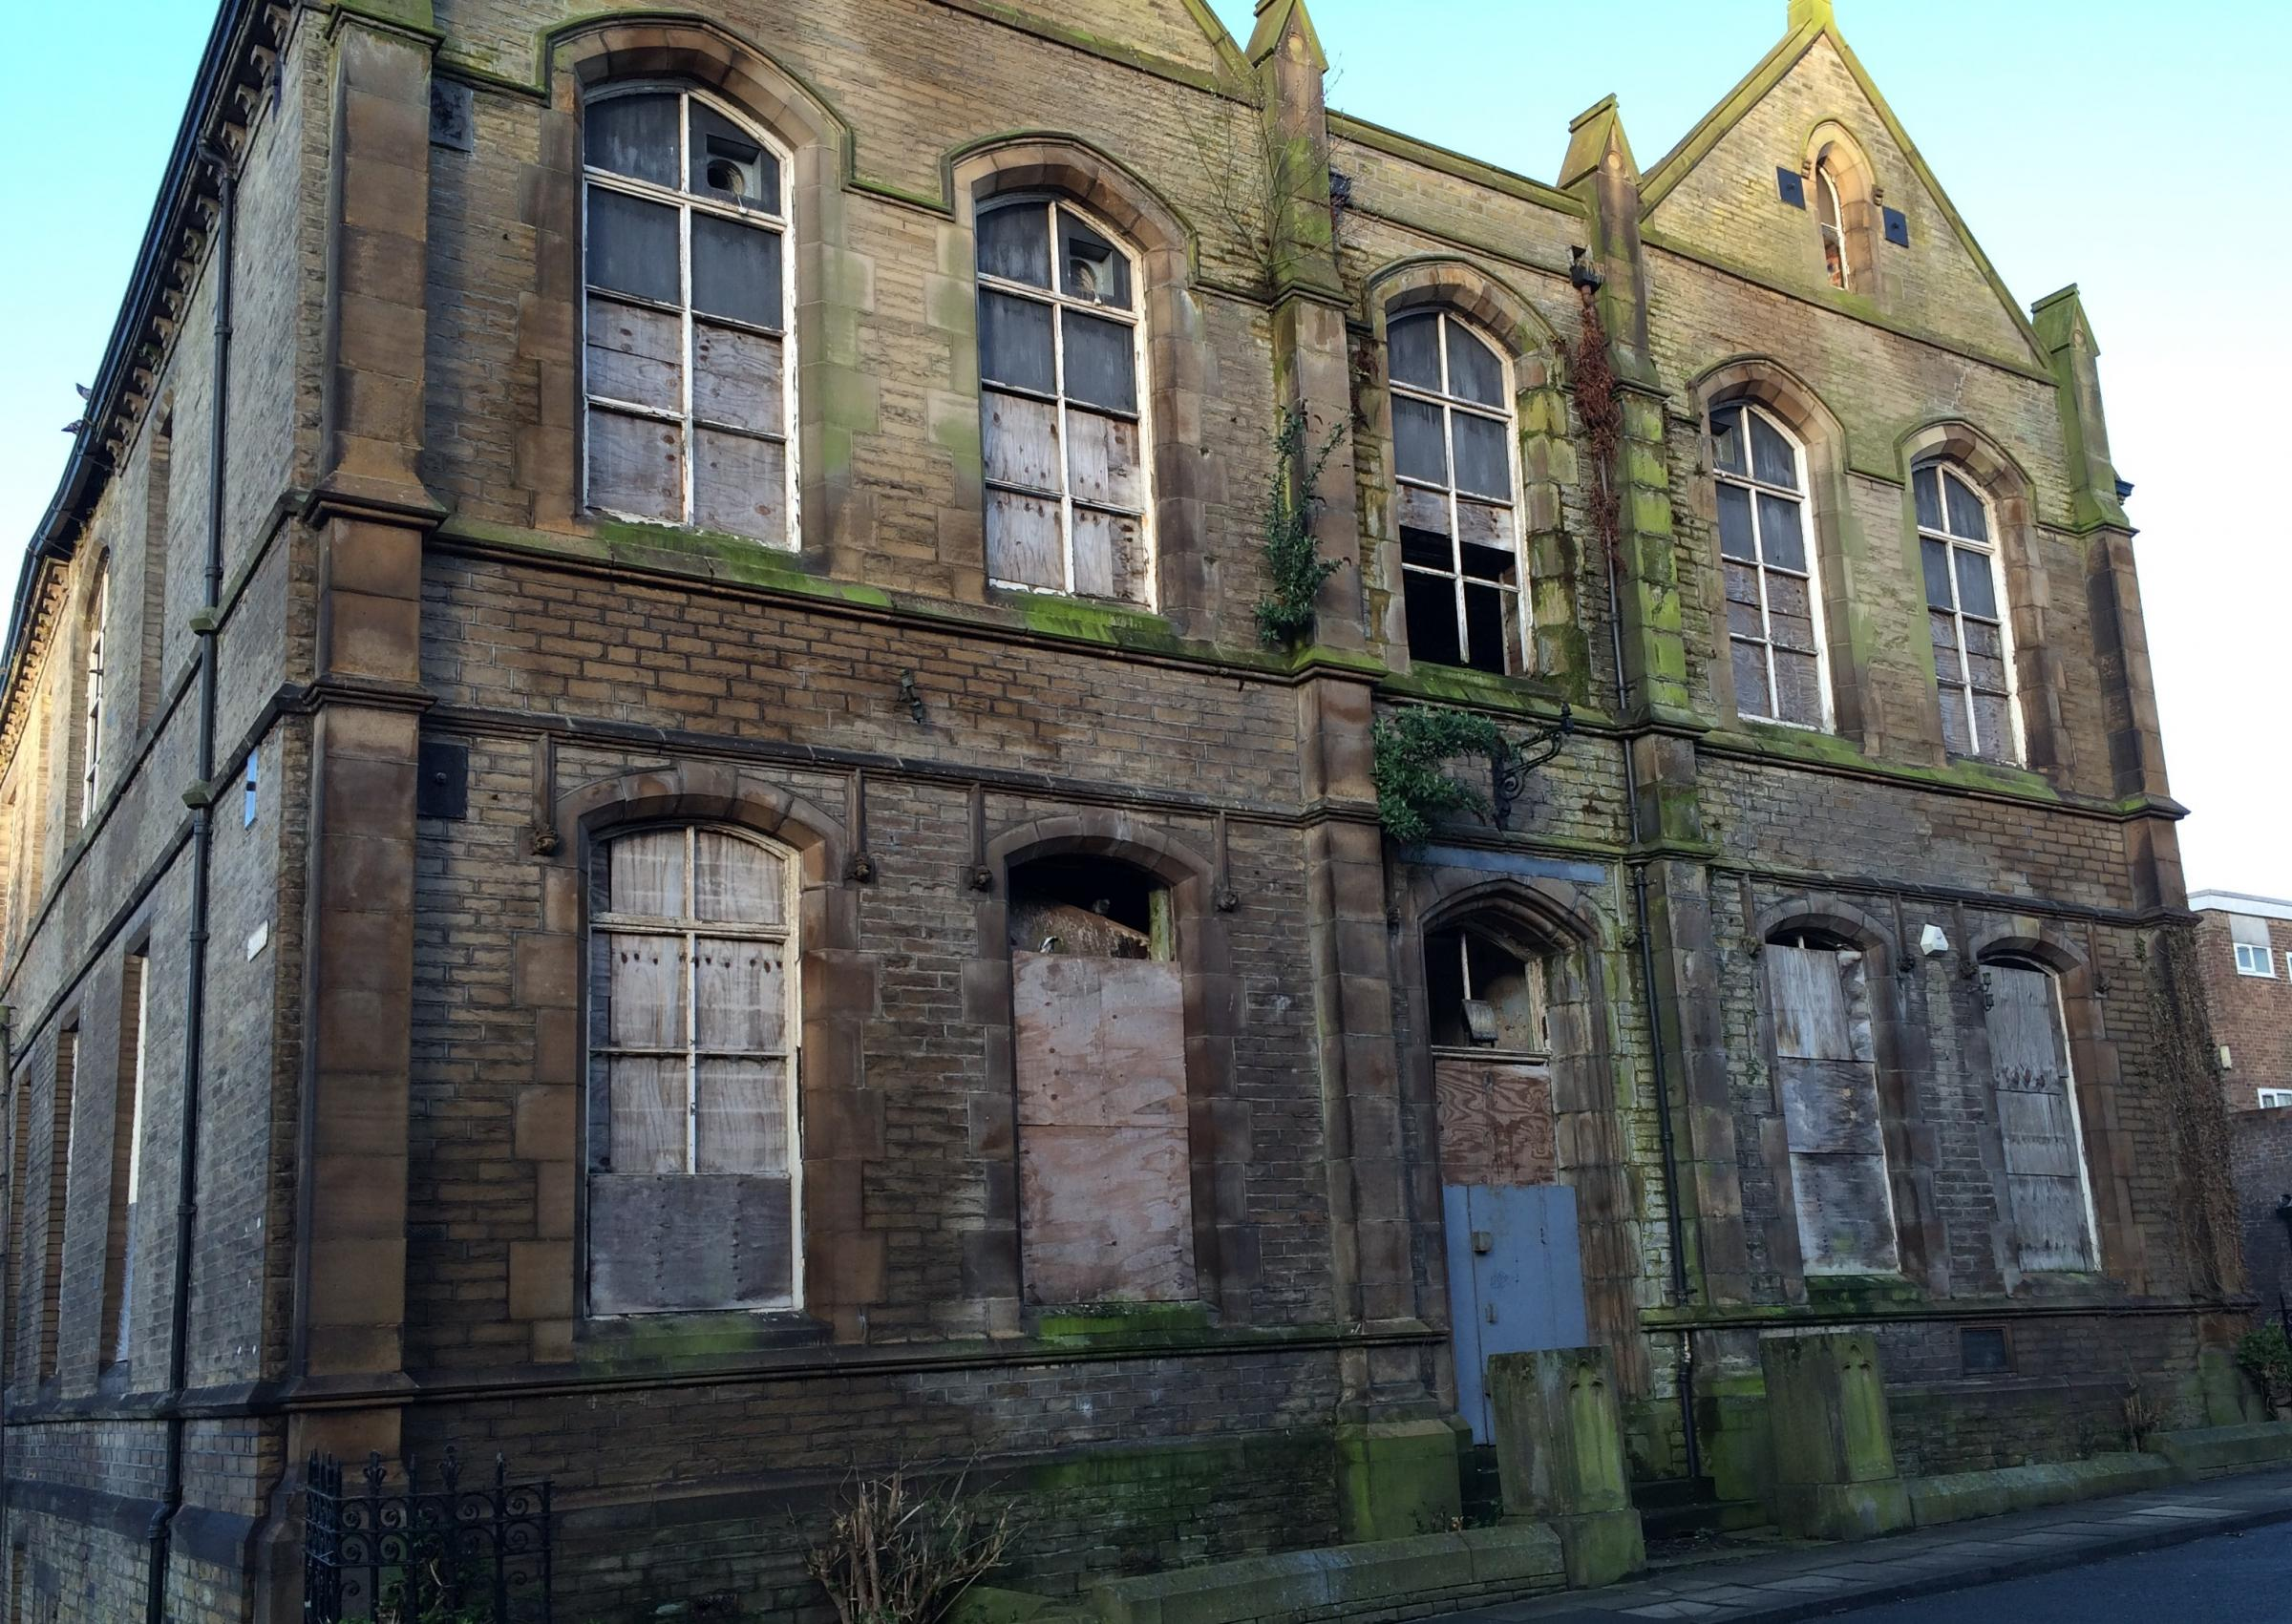 Plans have been submitted to demolish the Priestthorpe Annexe building in Bingley